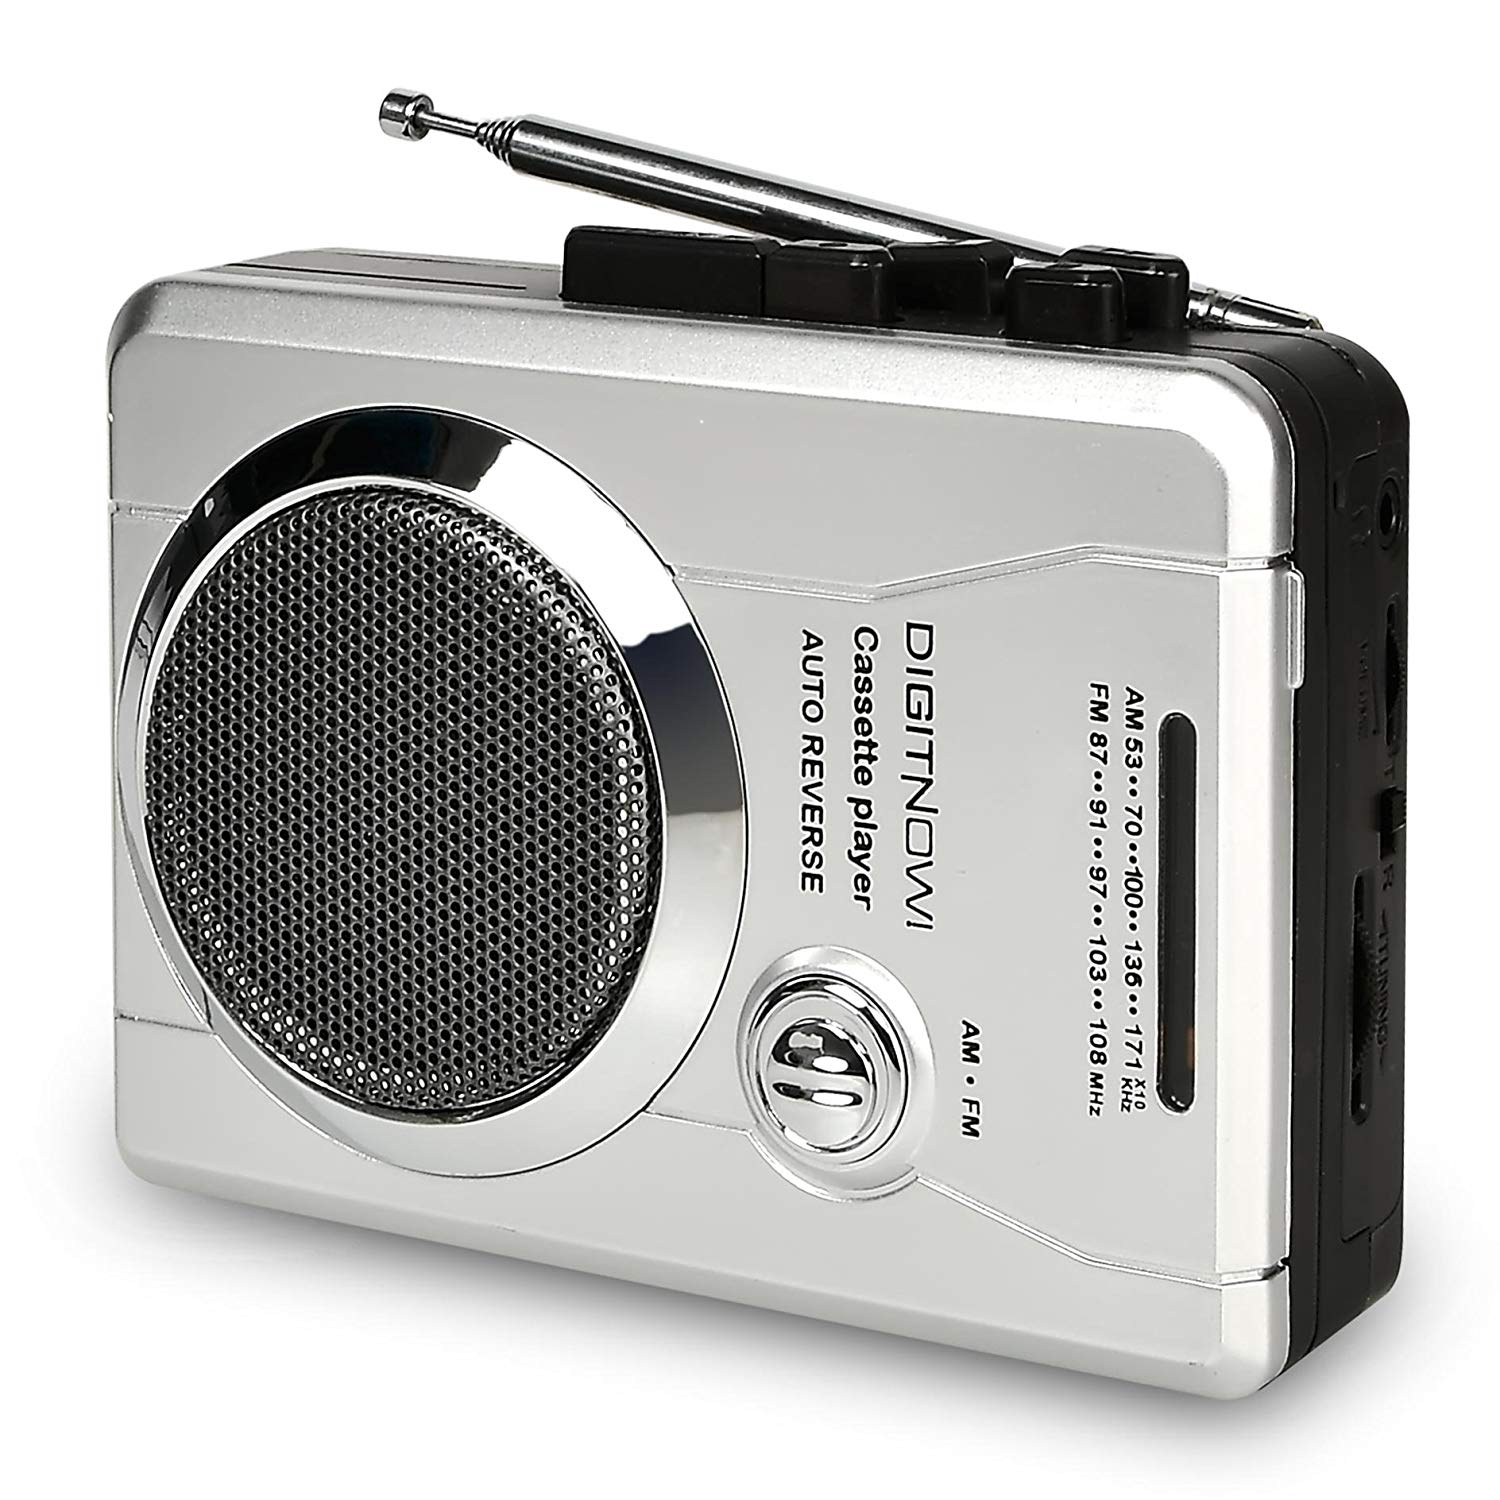 Bluetooth Cassette Player,Portable Cassette Player with Bluetooth Transmitter Walkman Player Battery or USB Power Supply,Retro-Style Bluetooth Tape Music Player with Earphones with Auto-Reverse